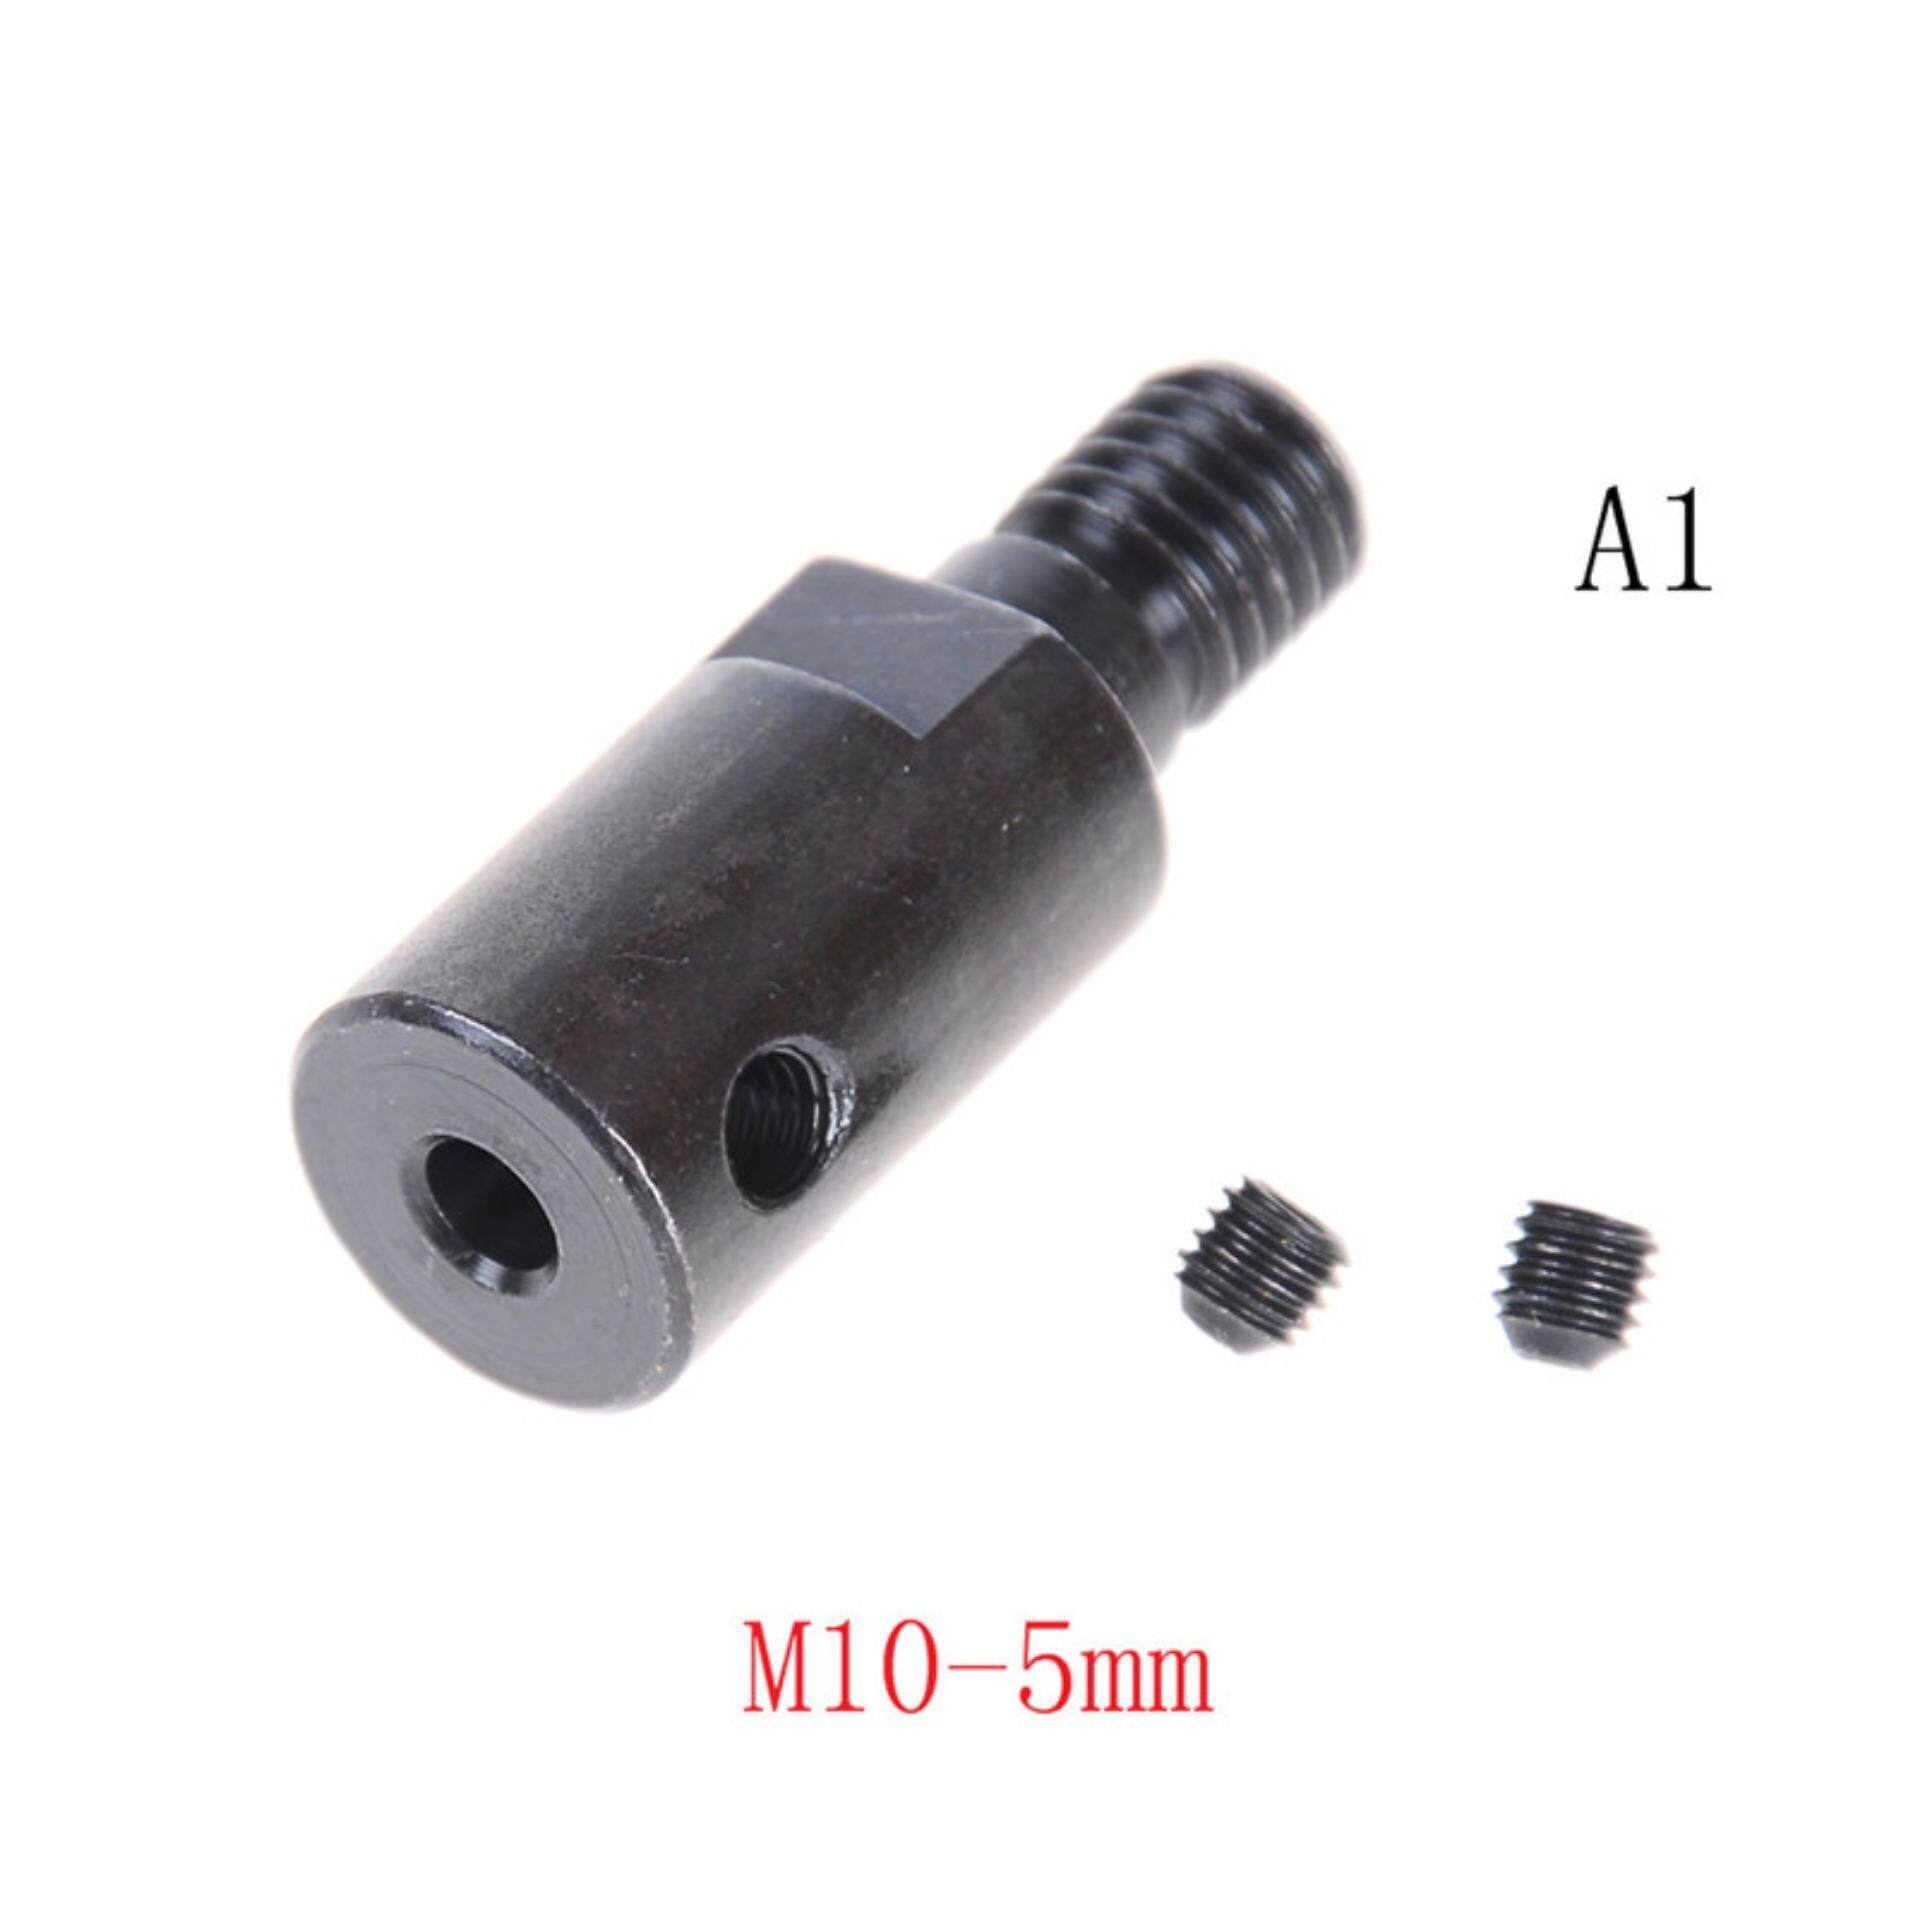 Sky Wing Shank M10 Arbor Mandrel Connector Adaptor Cutting Tool  5mm